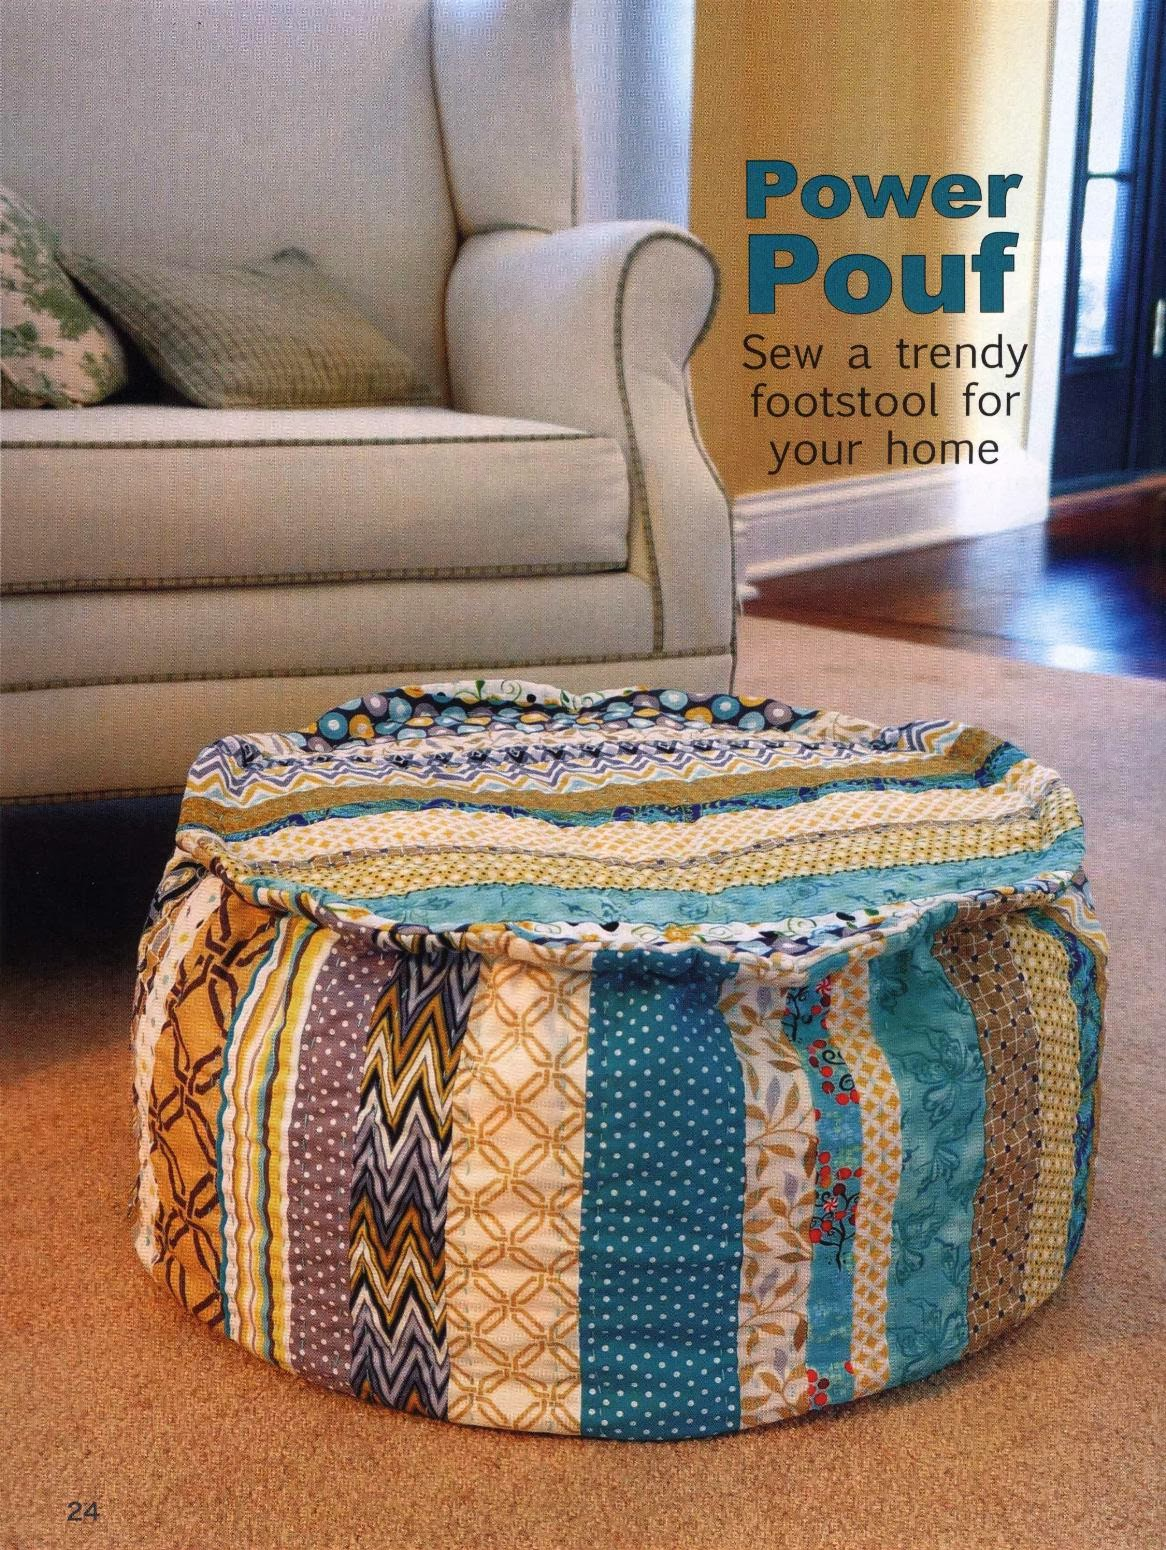 Power Pouf. Sew a trendy footstool for your home